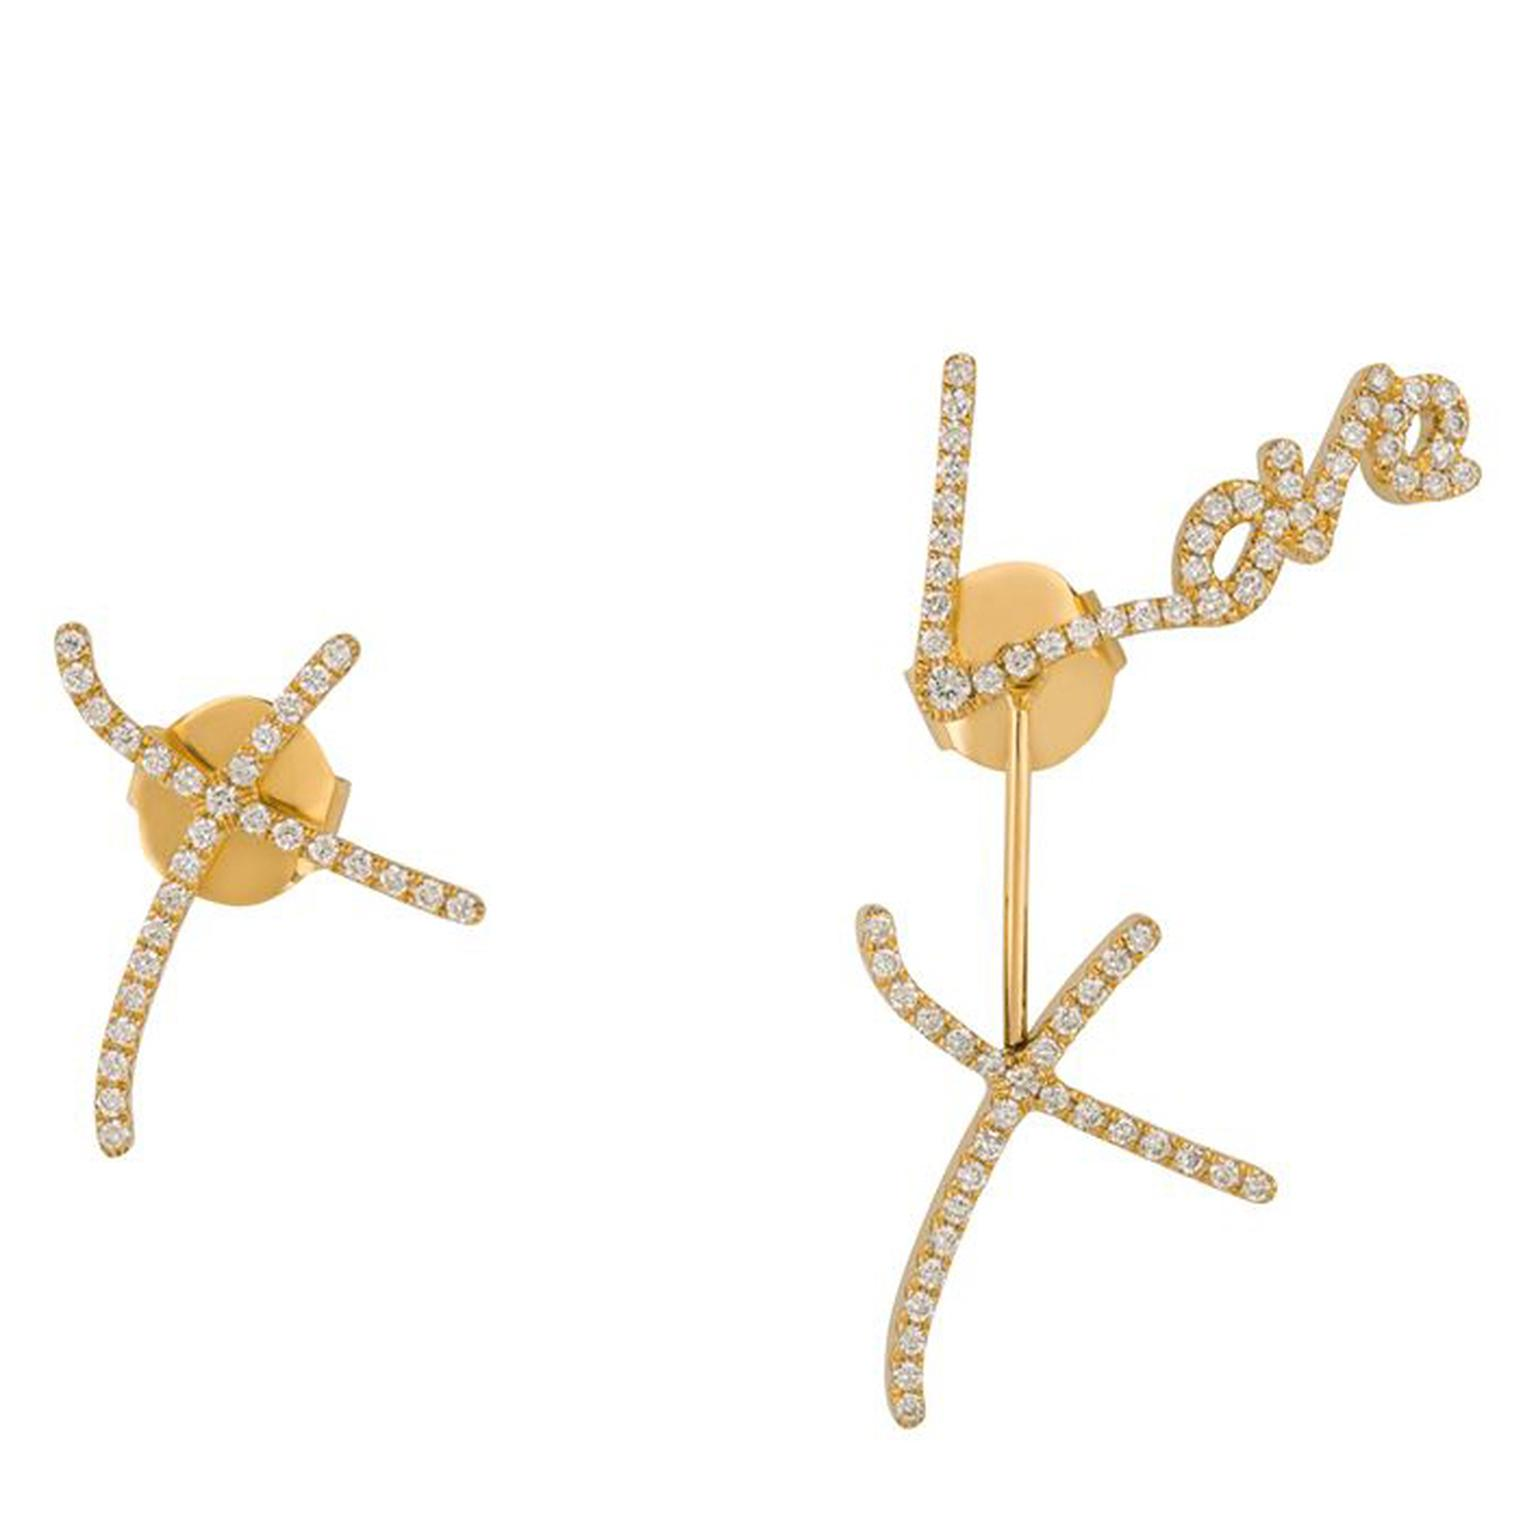 Stephen Webster Promise To Love You Earrings